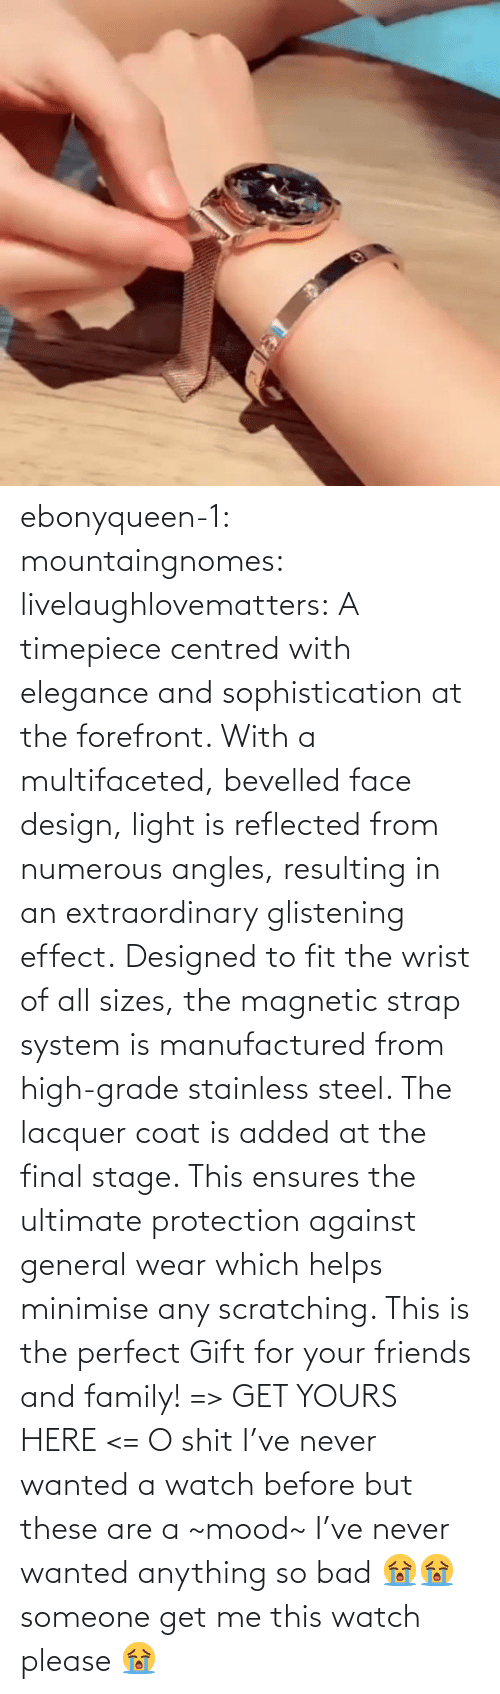 system: ebonyqueen-1:  mountaingnomes:  livelaughlovematters:  A timepiece centred with elegance and sophistication at the forefront. With a multifaceted, bevelled face design, light is reflected from numerous angles, resulting in an extraordinary glistening effect. Designed to fit the wrist of all sizes, the magnetic strap system is manufactured from high-grade stainless steel. The lacquer coat is added at the final stage. This ensures the ultimate protection against general wear which helps minimise any scratching. This is the perfect Gift for your friends and family! => GET YOURS HERE <=  O shit I've never wanted a watch before but these are a ~mood~  I've never wanted anything so bad 😭😭 someone get me this watch please 😭